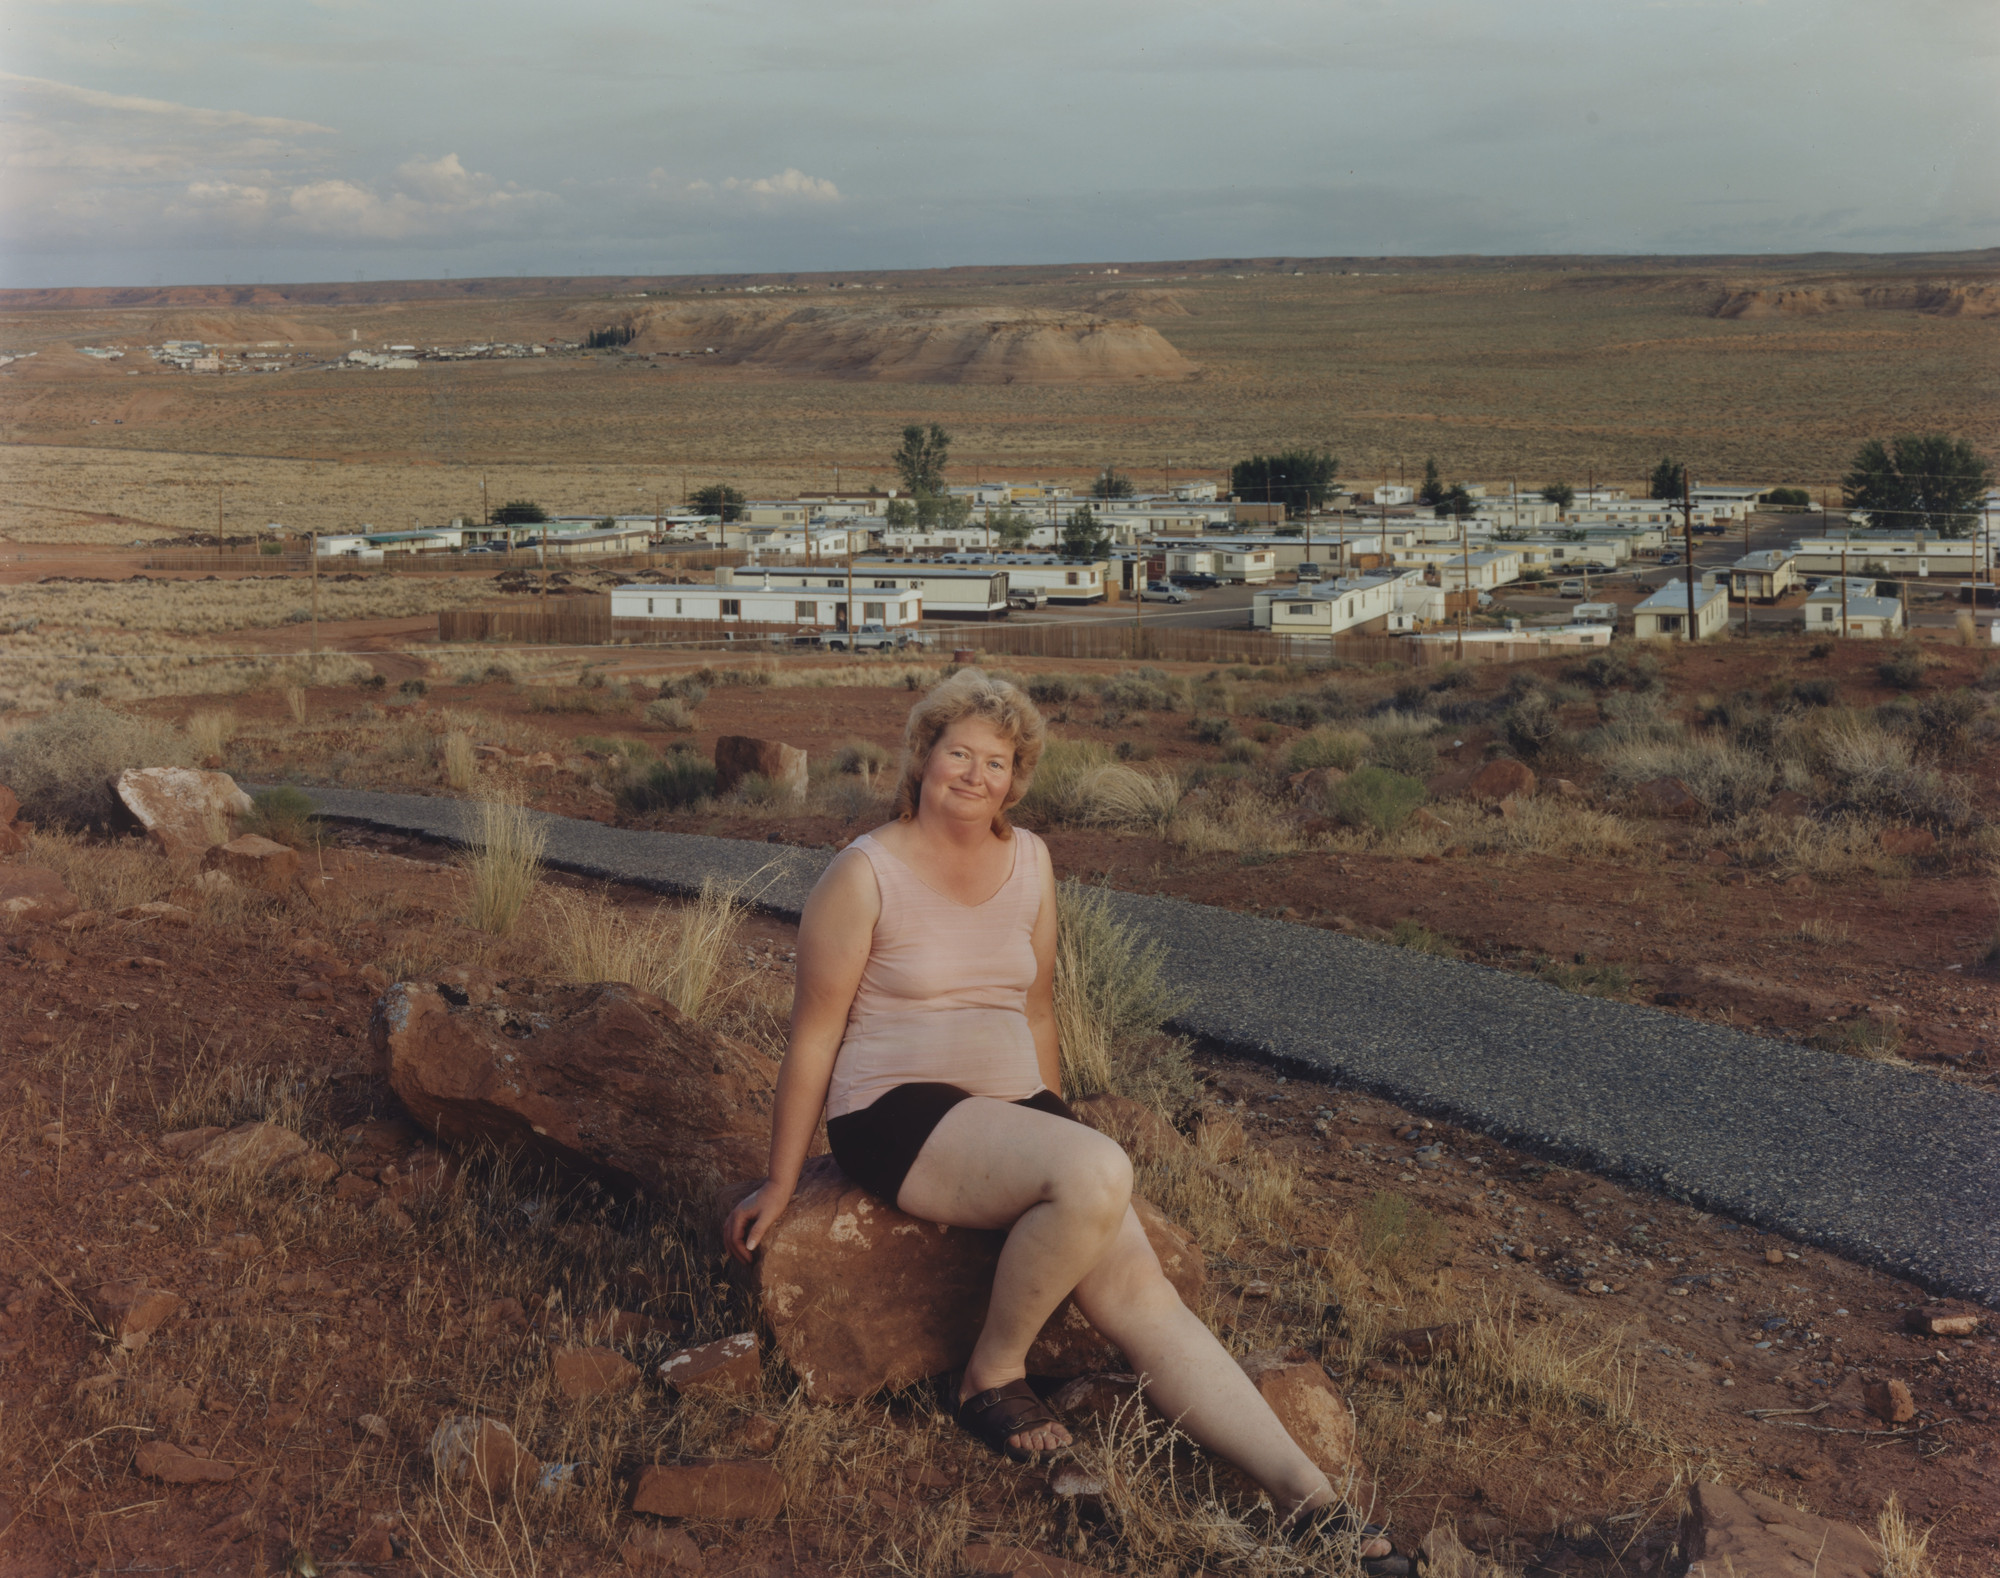 Joel Sternfeld. Page, Arizona. August 1983